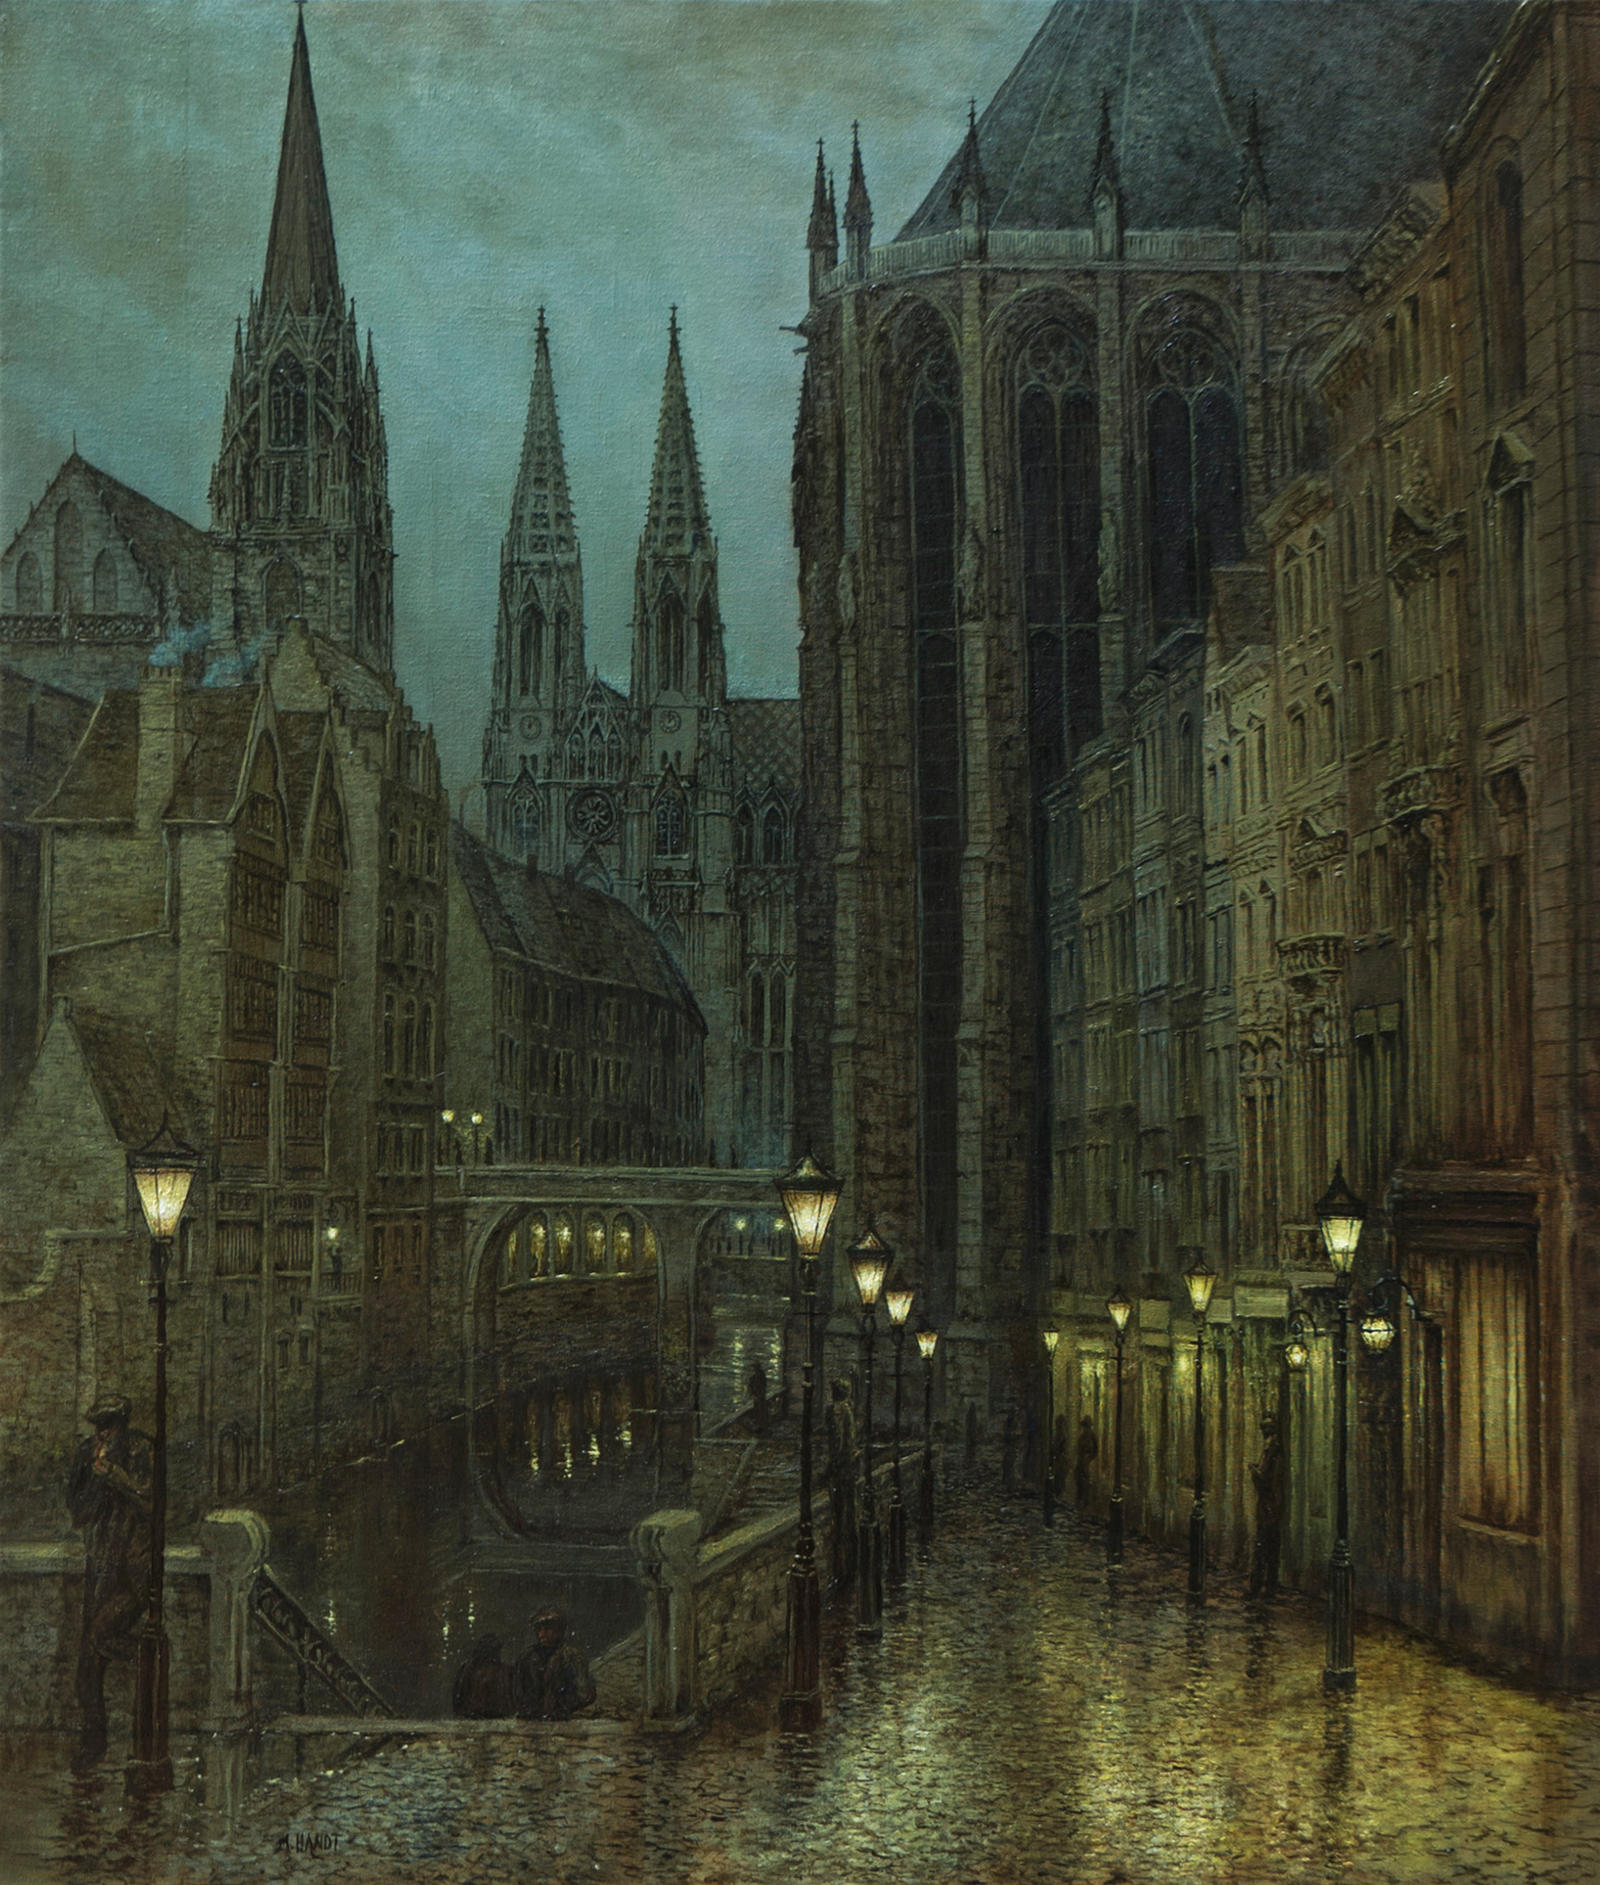 Rainy Night in the Old Quarter by MHandt